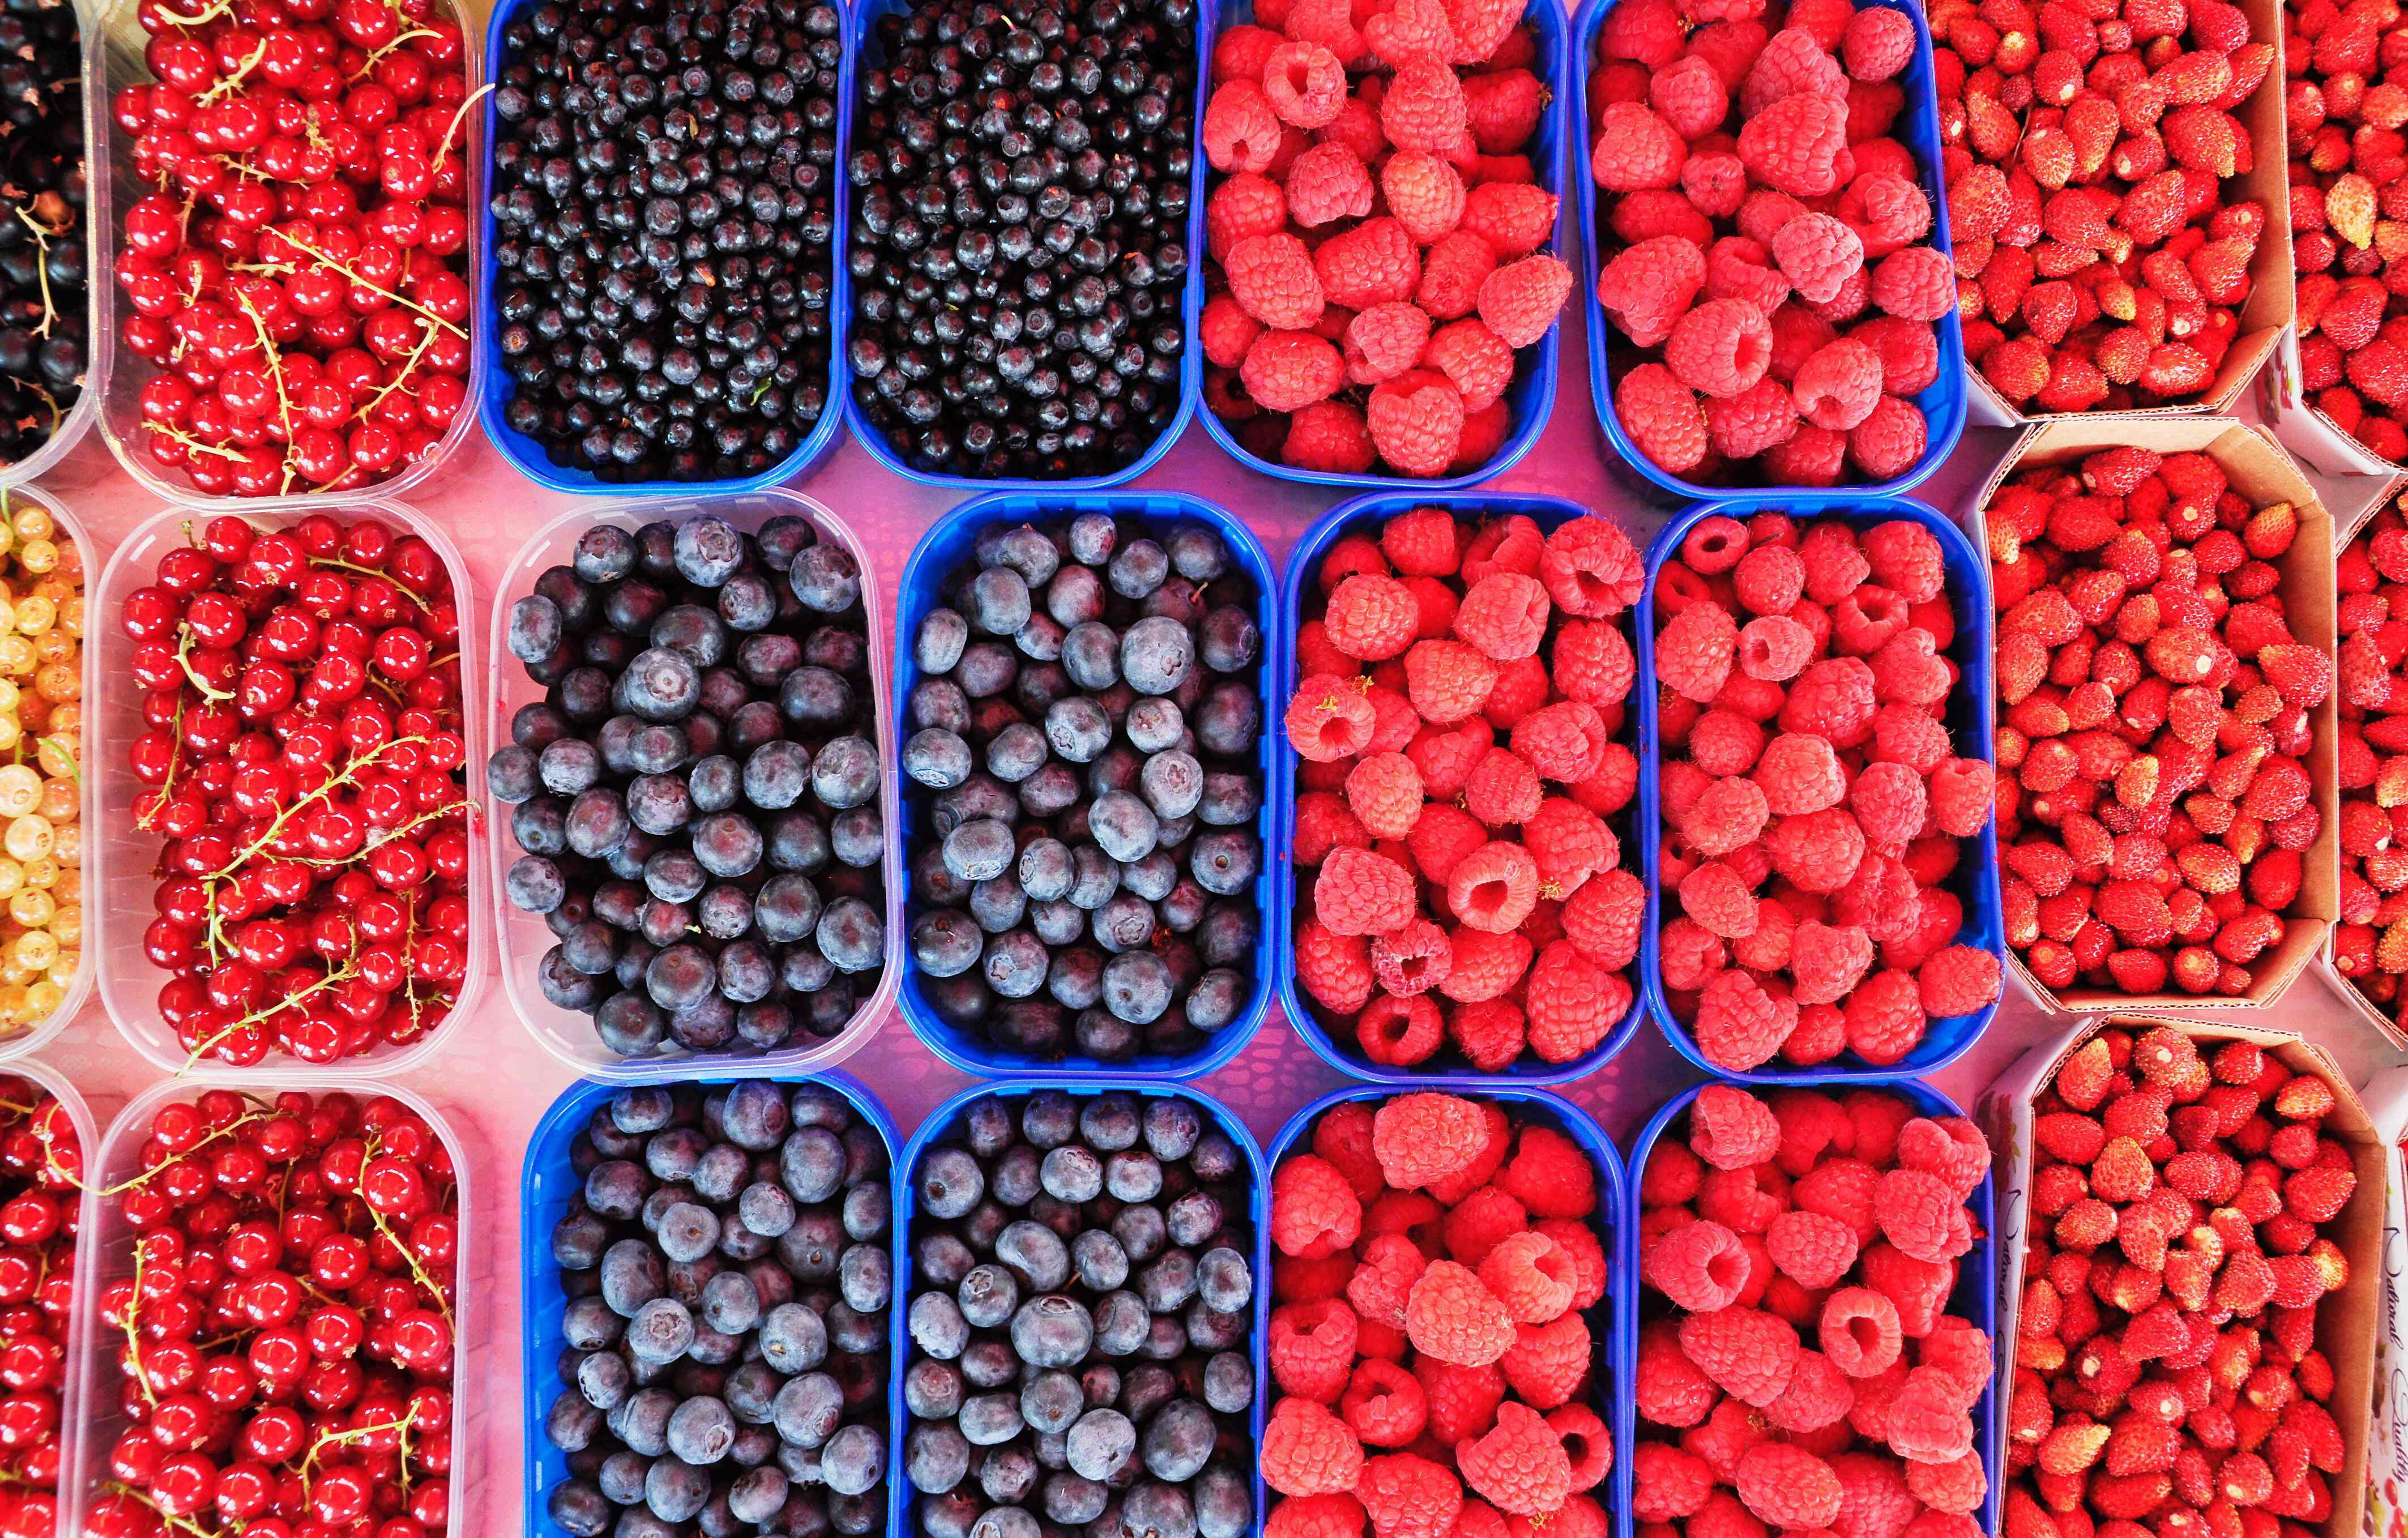 all sorts of berries: cranberries, raspberries, blue berries...